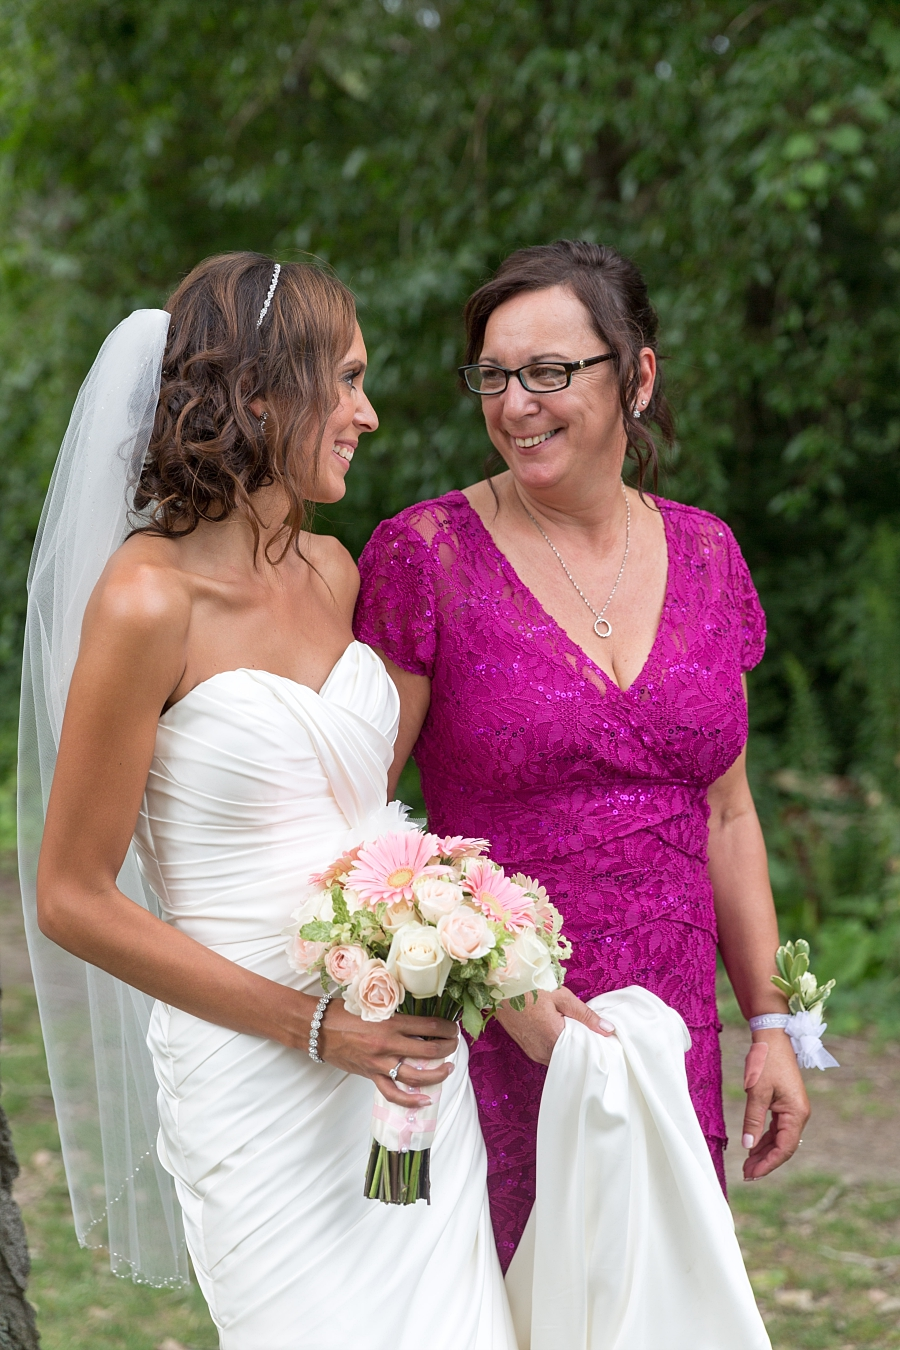 Stacy-Anderson-Photography-Sarnia-Toronto-Ontario-Wedding-Photographer_0006.jpg